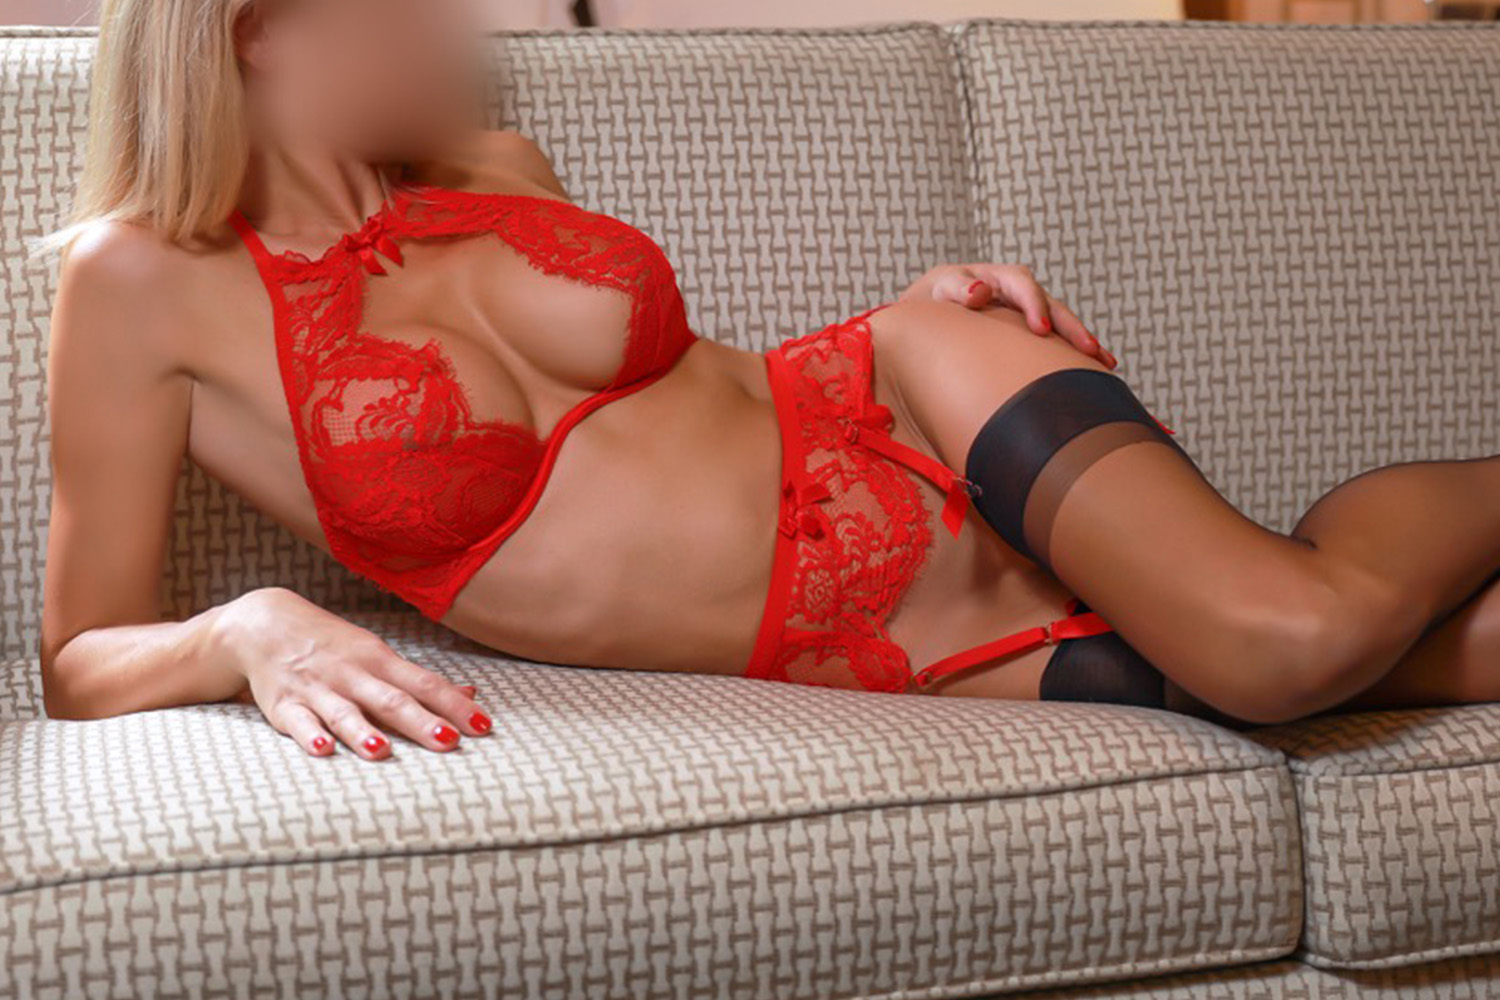 hood escort girl mature marseille